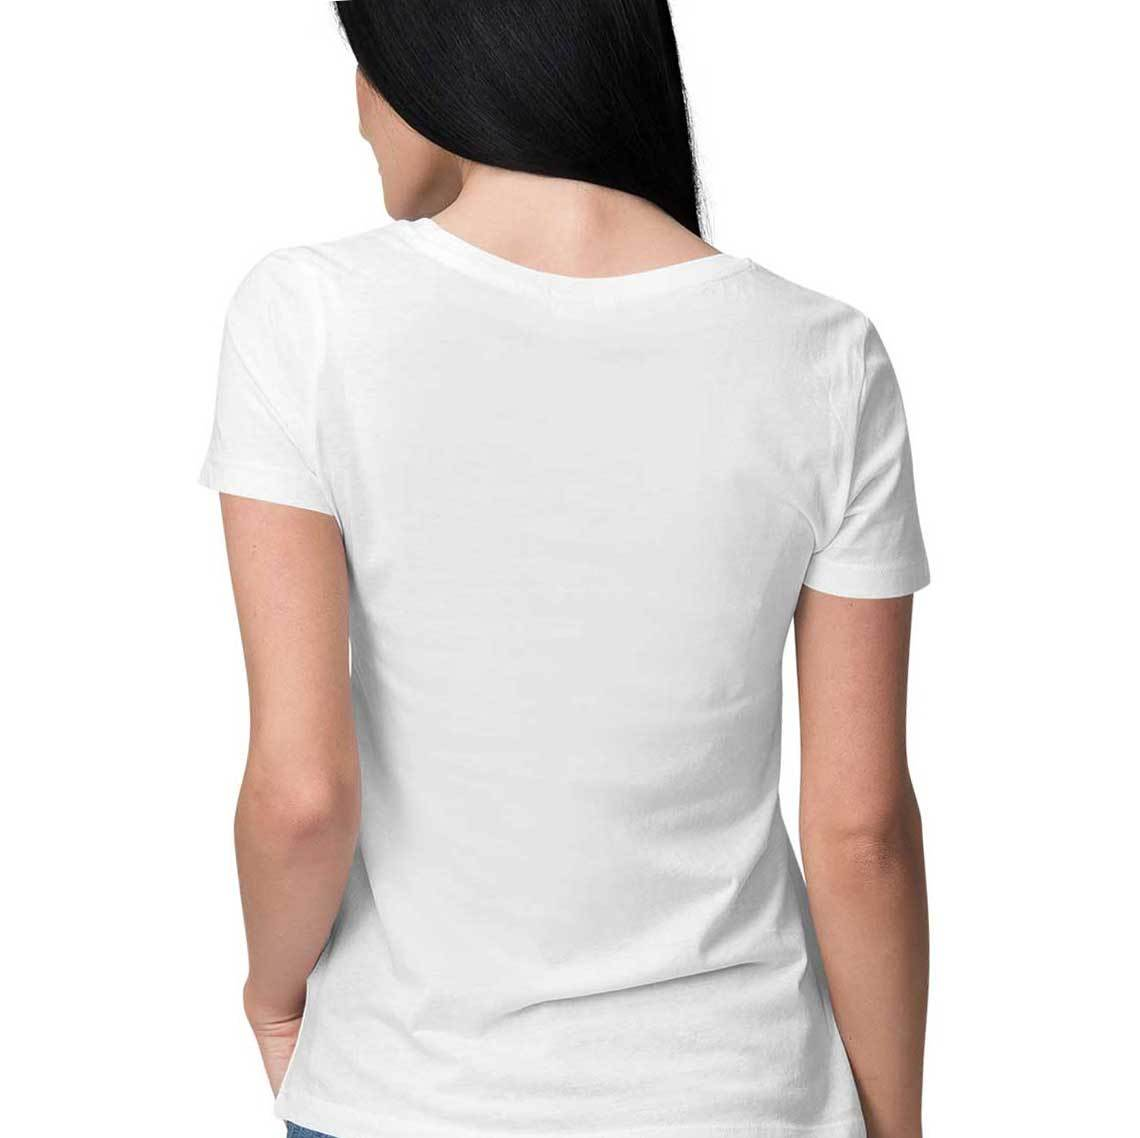 Pearfect Couple - Women's Half Sleeve T-shirt